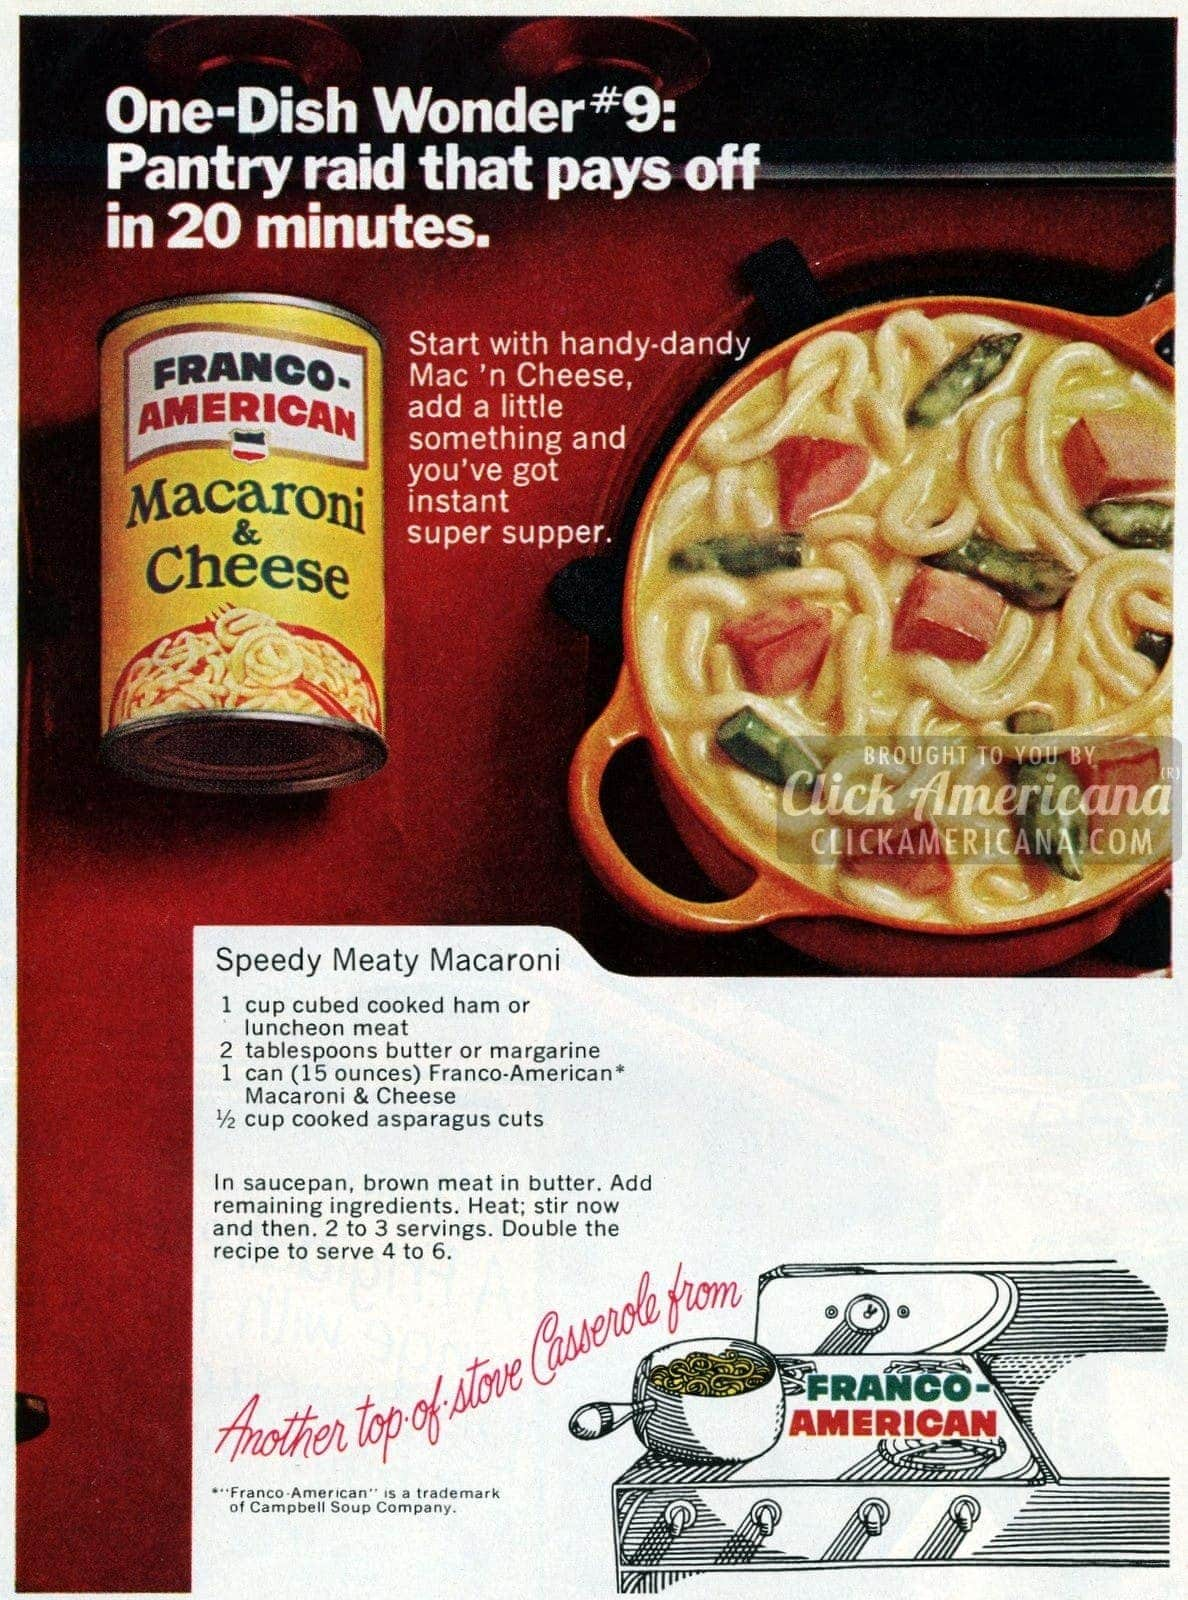 Speedy Meaty Macaroni & Cheese recipe (1969)